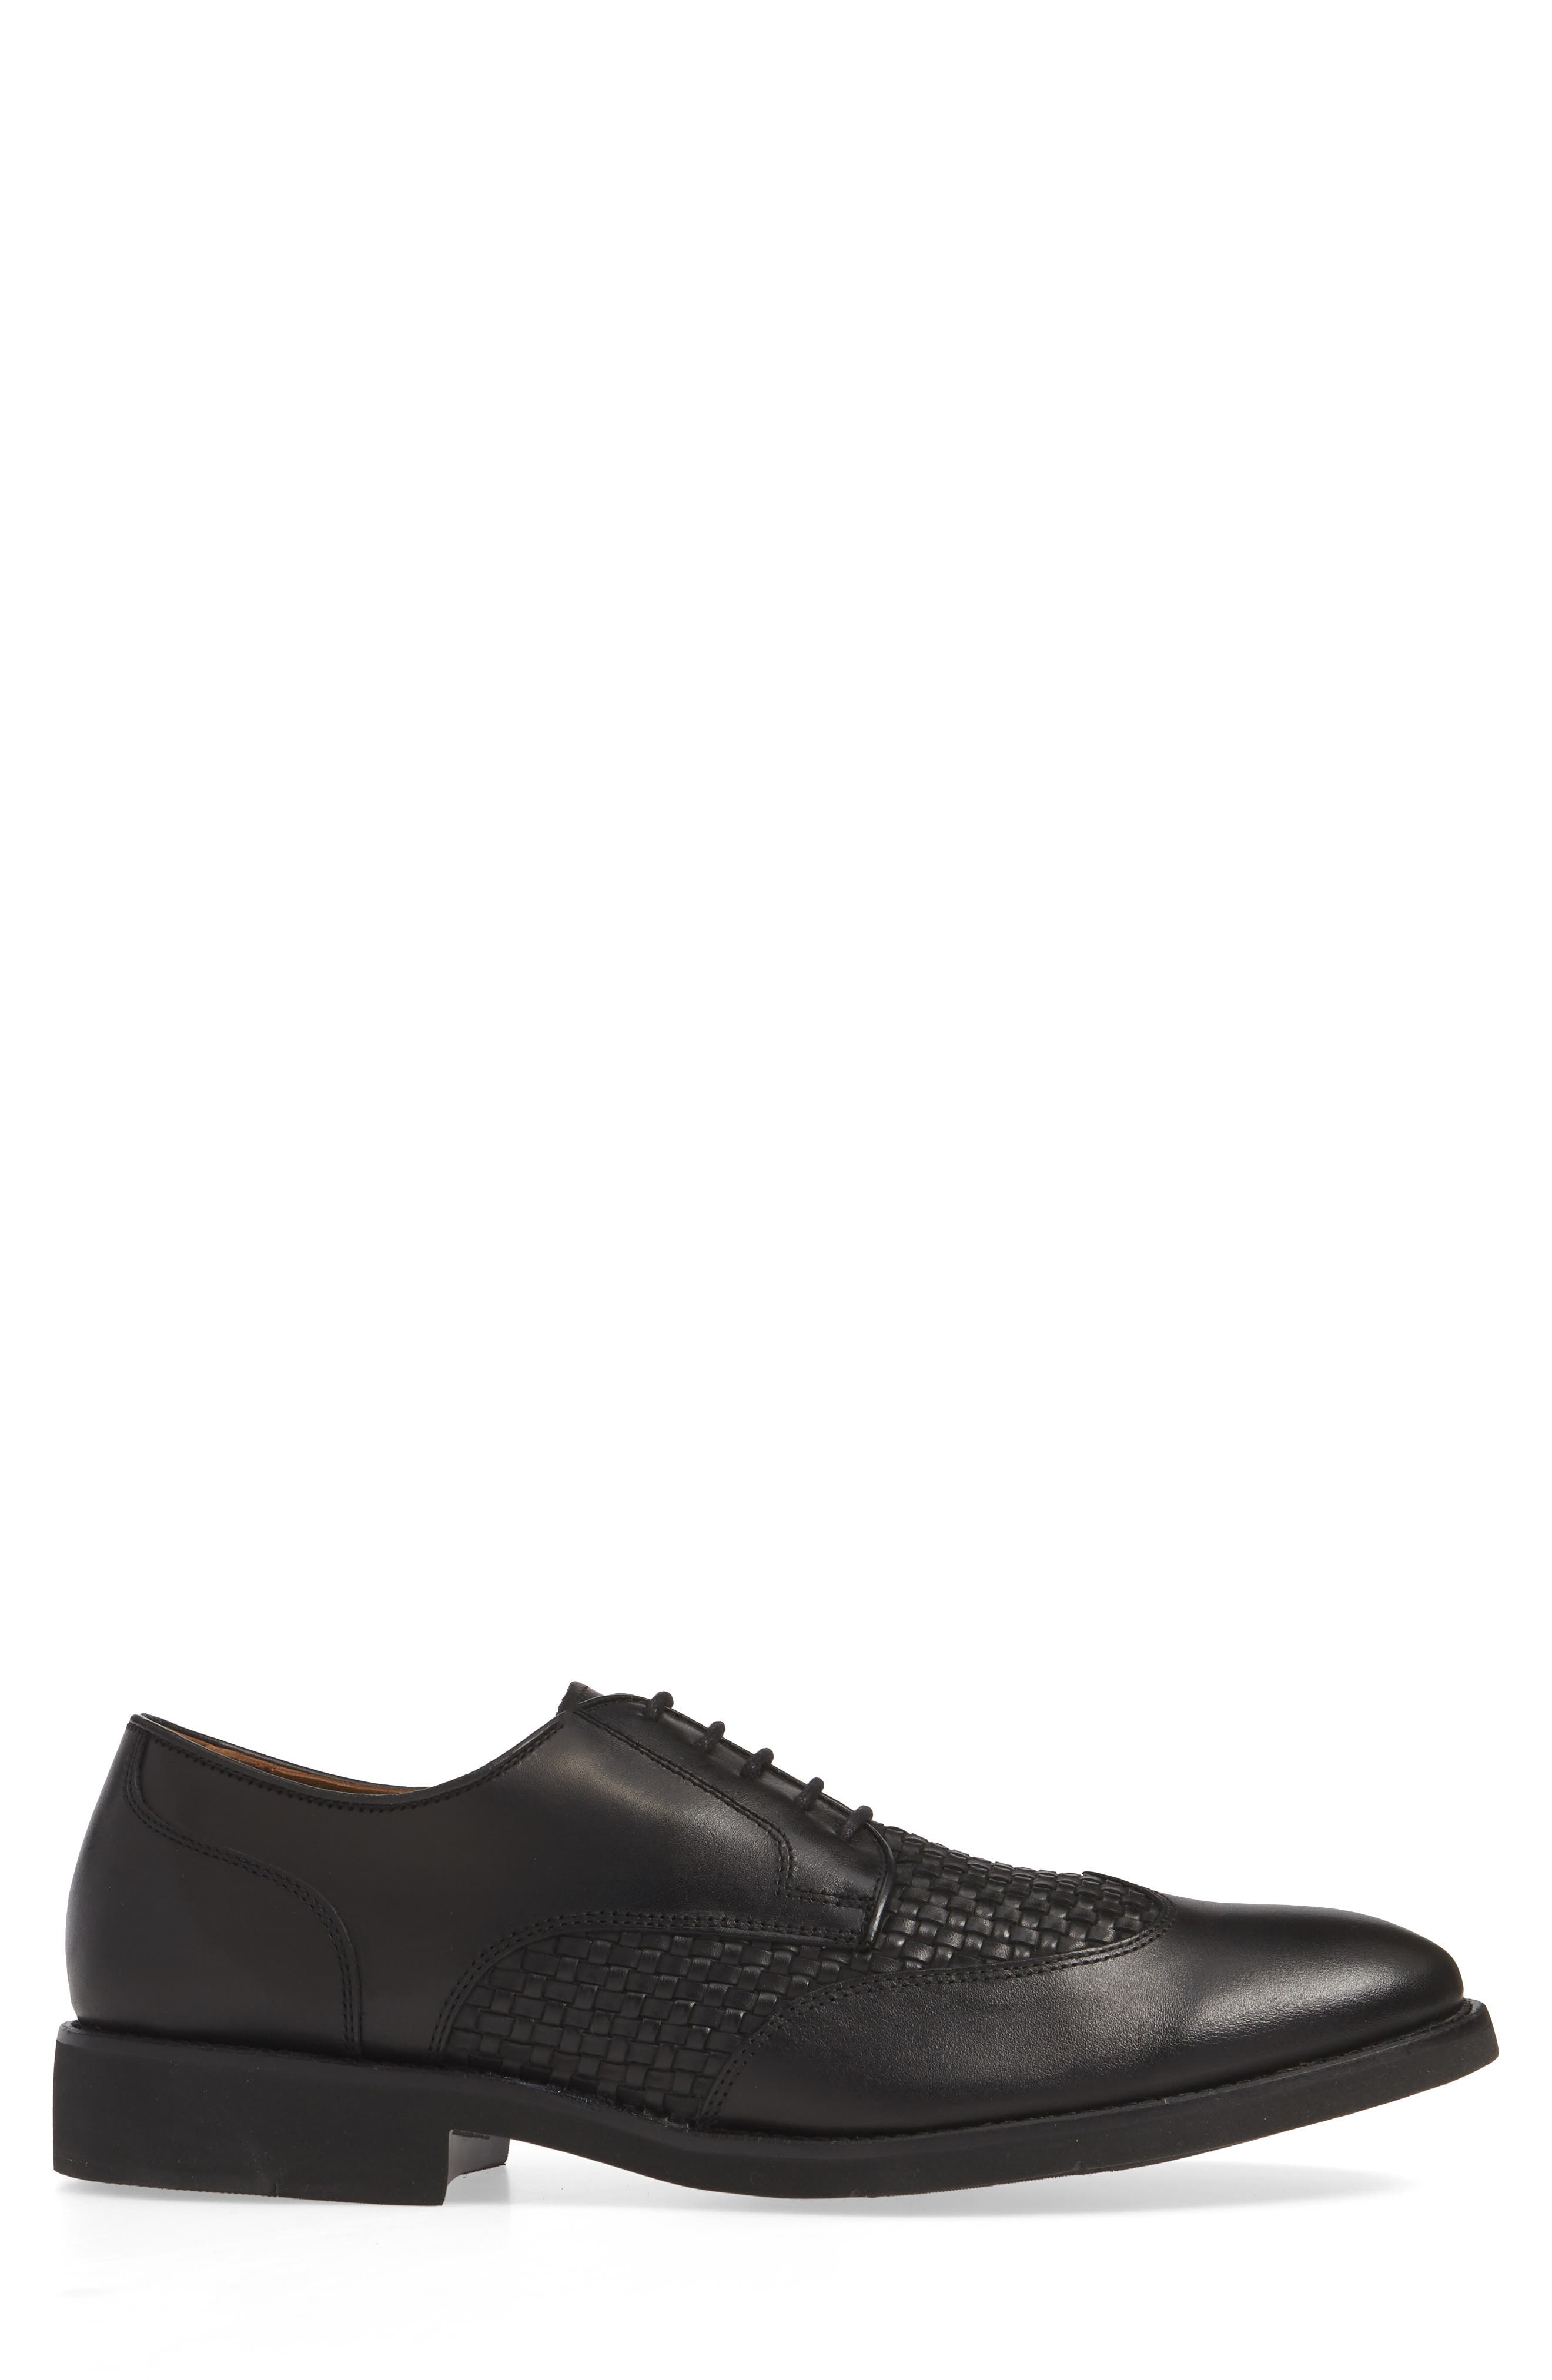 JOHNSTON & MURPHY, Carlson Woven Wingtip Derby, Alternate thumbnail 3, color, BLACK LEATHER